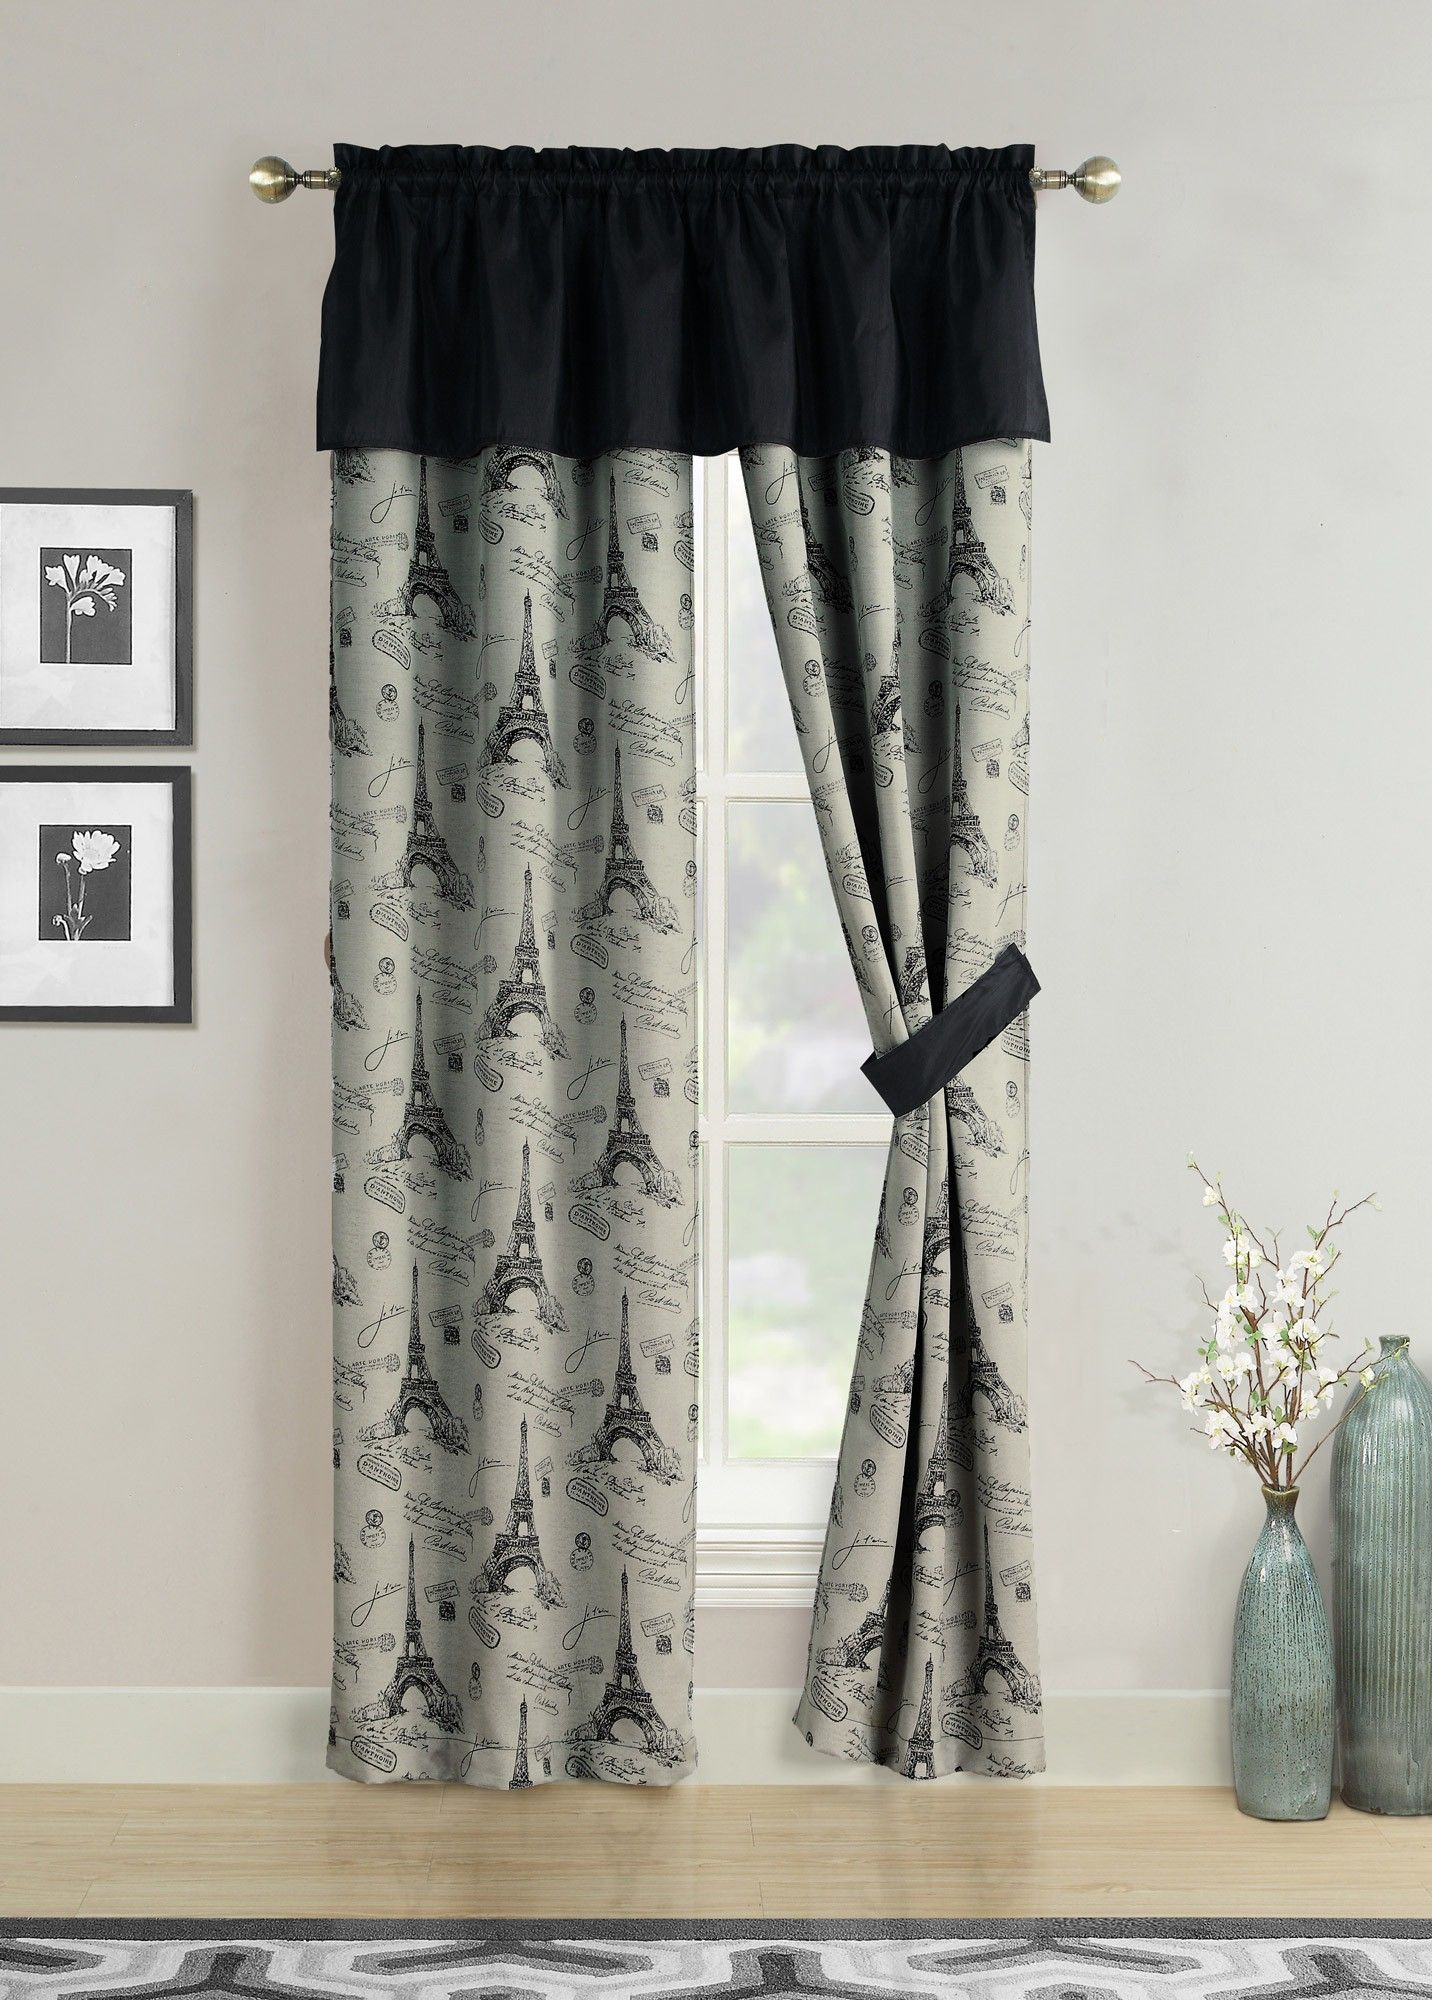 Aubrie Home Accents C Est La Vie Window Curtains Black Gray Paris Valance Panel Pair Drapes 84 Black Curtains Custom Drapes Curtains